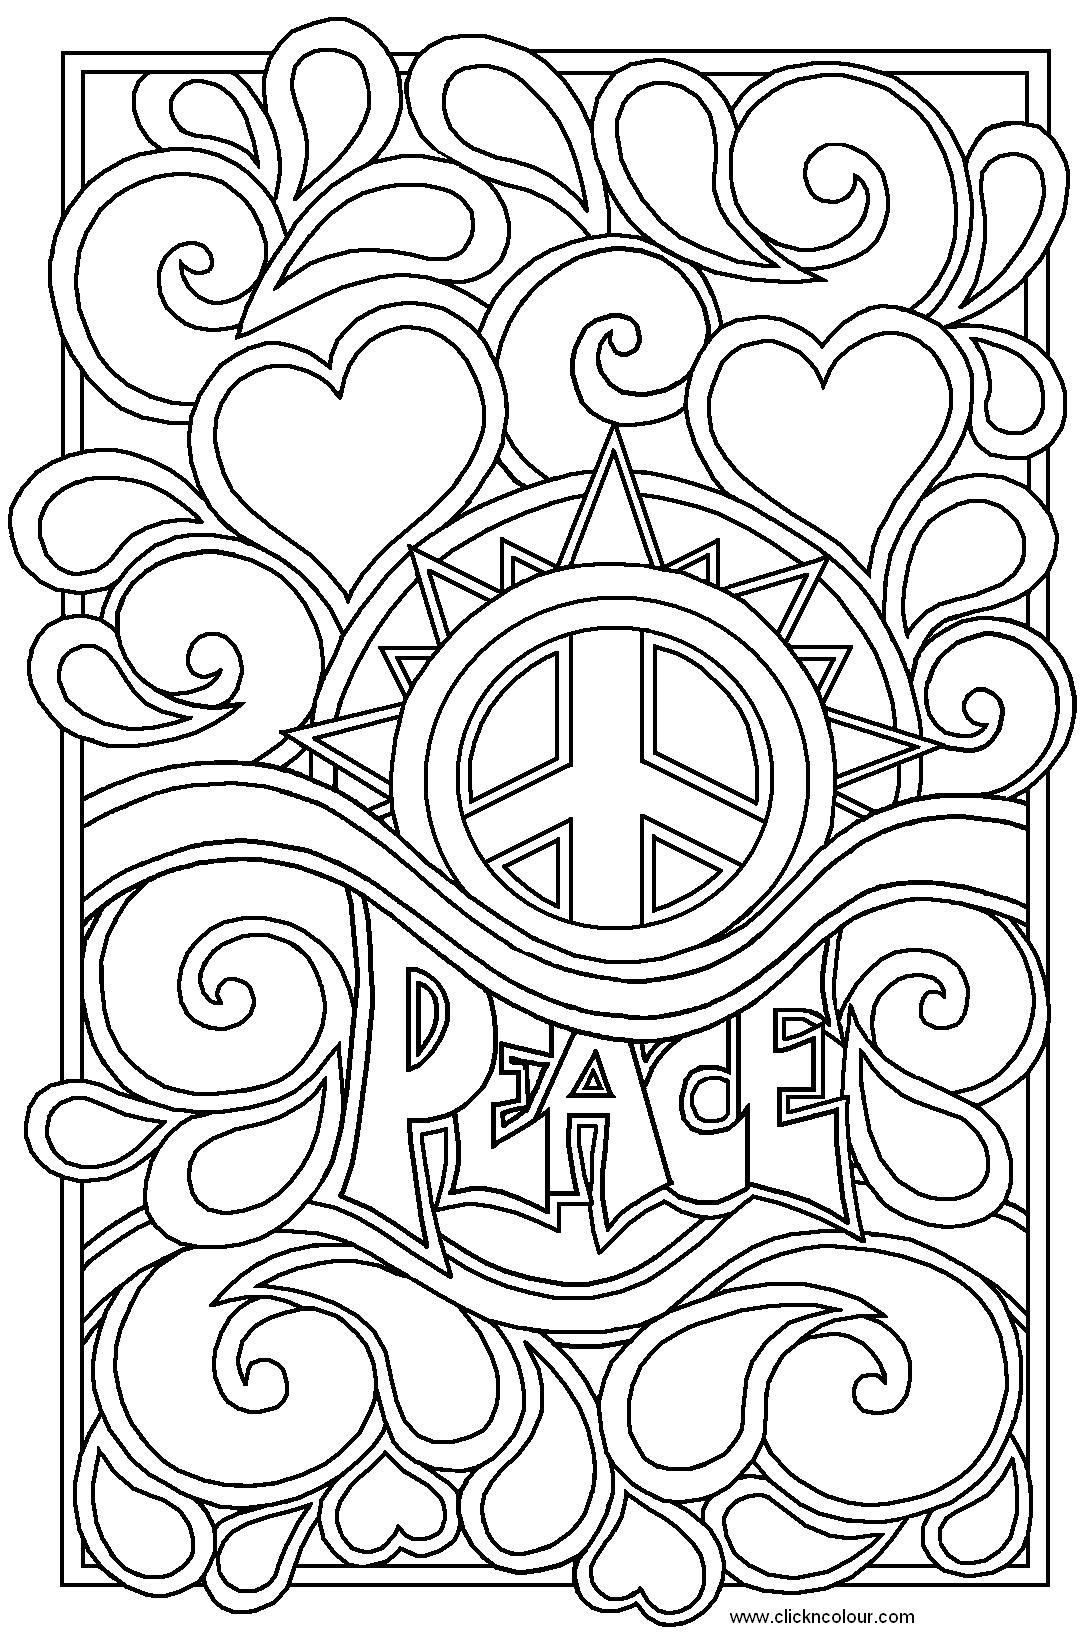 Heart Coloring Pages For Teenagers | peace and love Colouring Pages ...